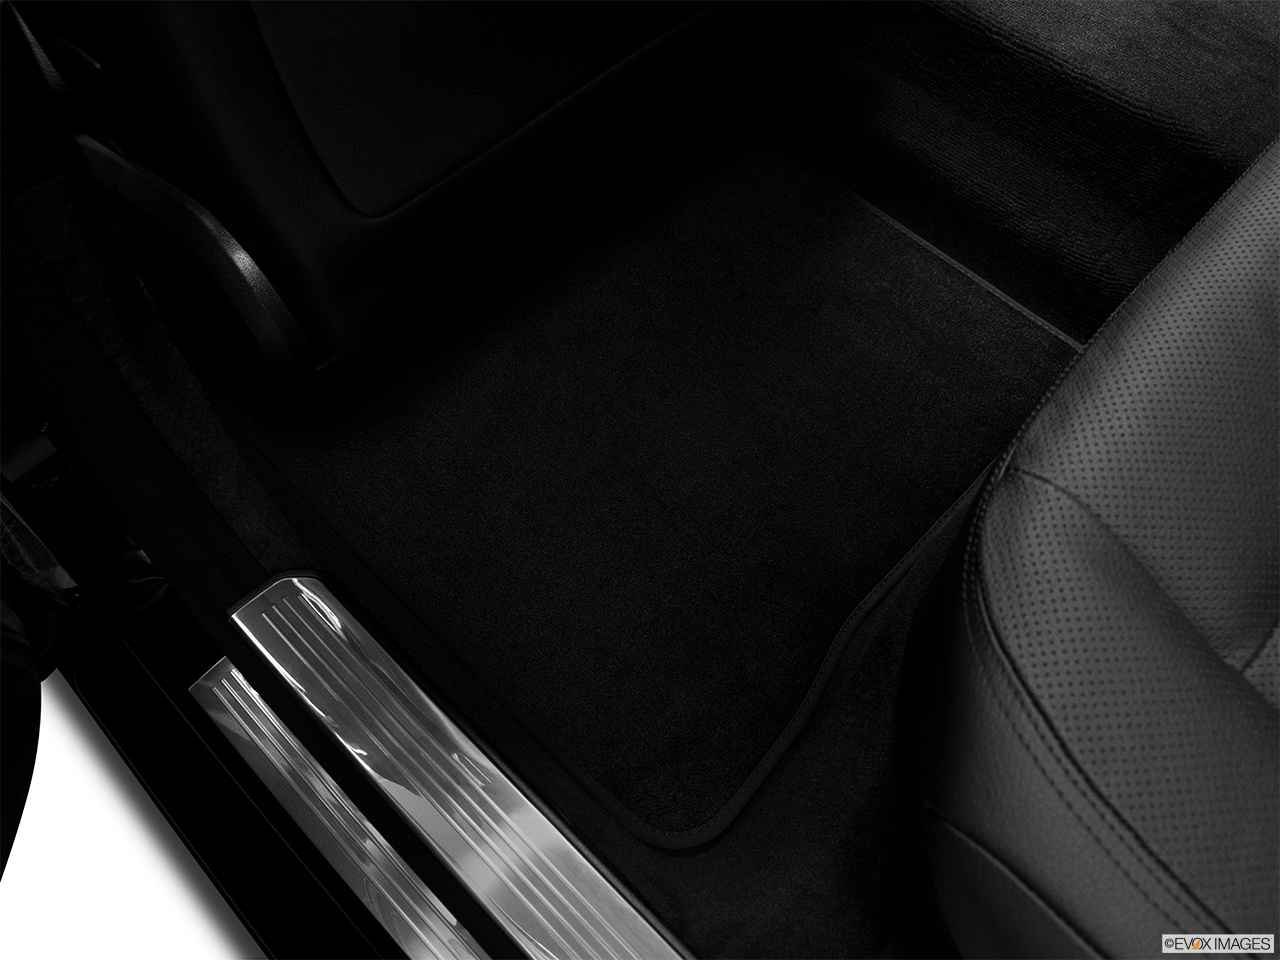 2012 Mercedes-Benz S-Class Hybrid S400 Rear driver's side floor mat. Mid-seat level from outside looking in.